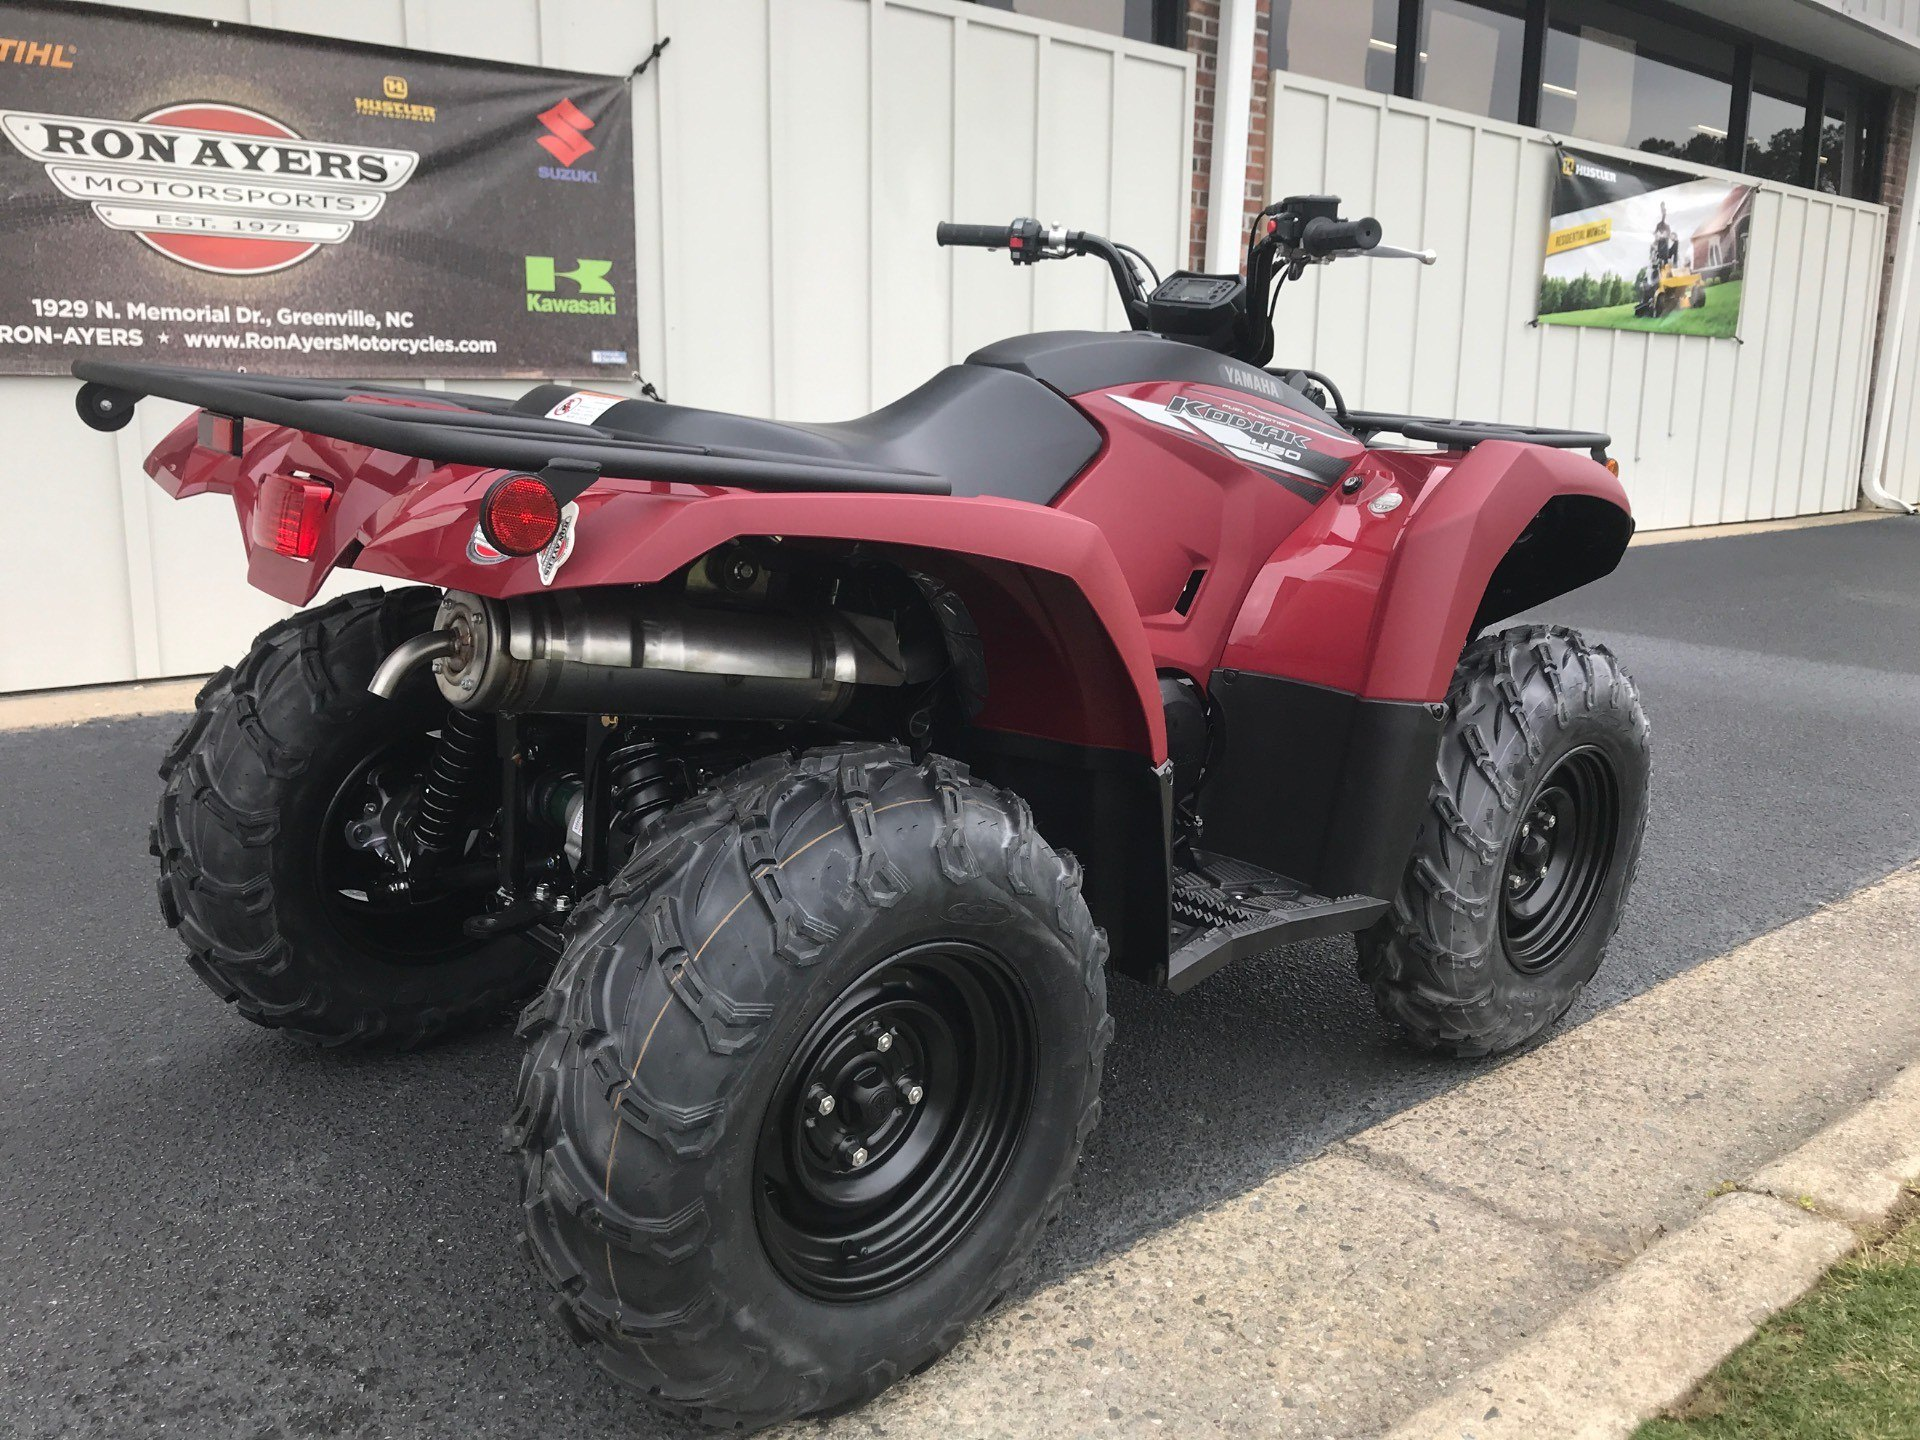 2020 Yamaha Kodiak 450 in Greenville, North Carolina - Photo 8